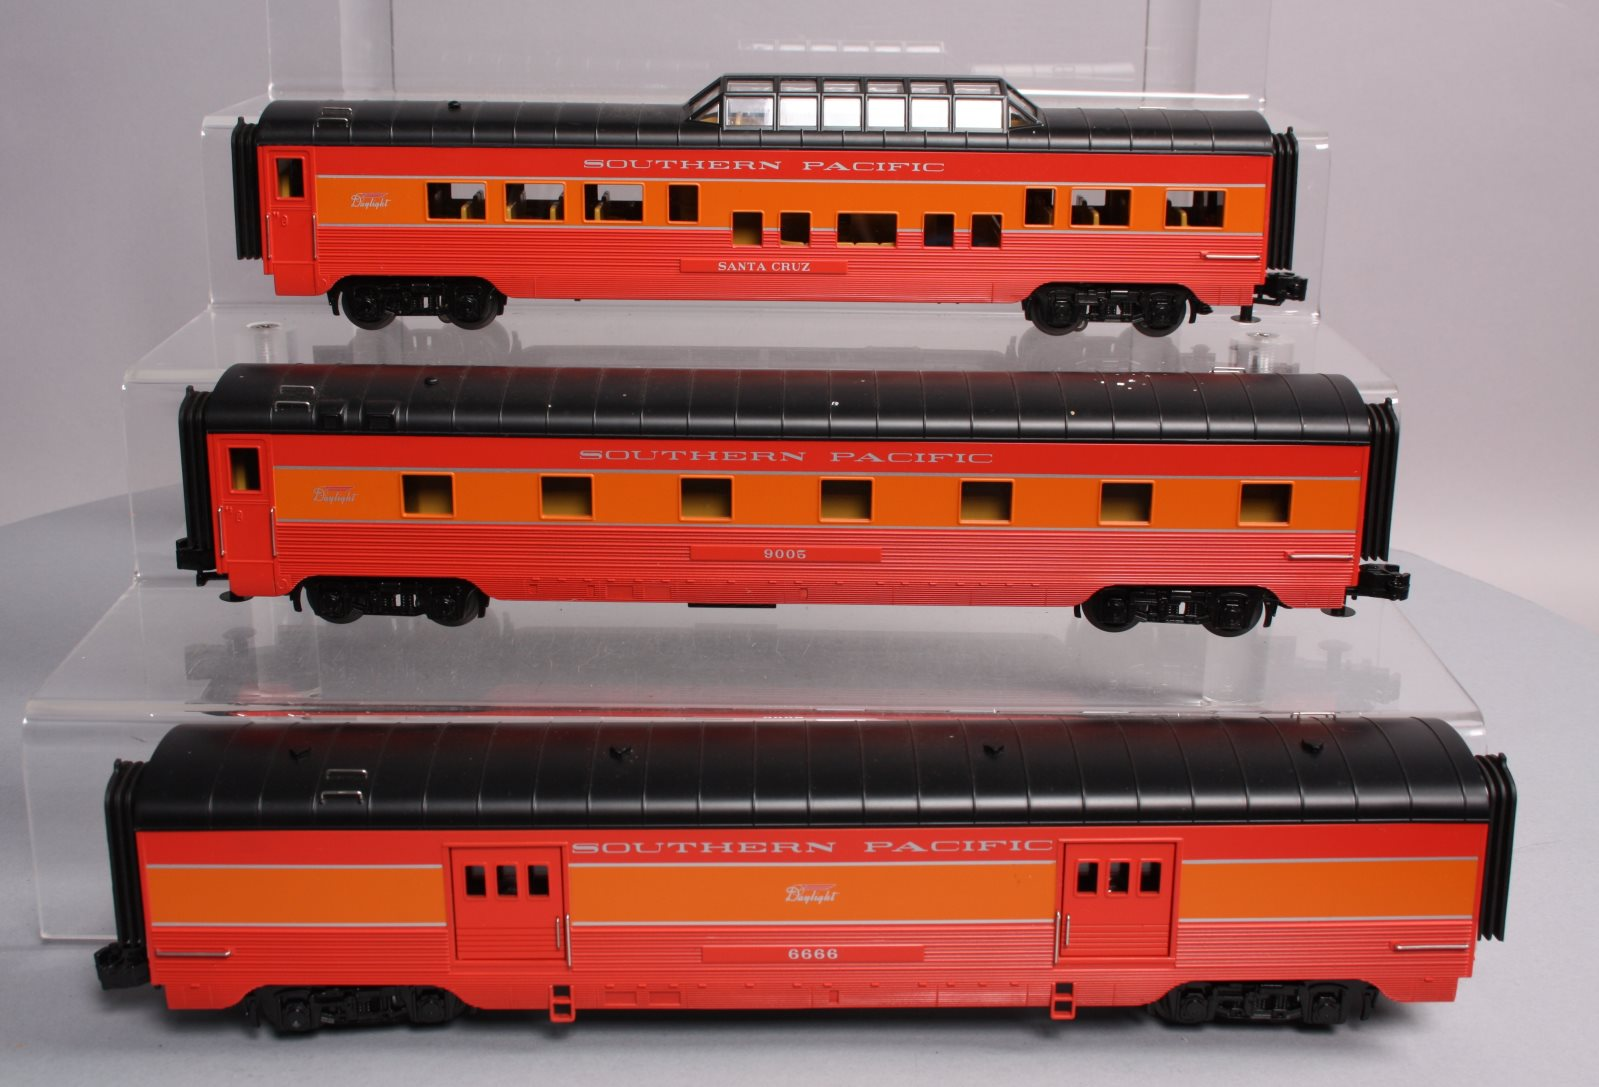 Buy MTH O Gauge Southern Pacific Passenger Cars [3] | Trainz Auctions